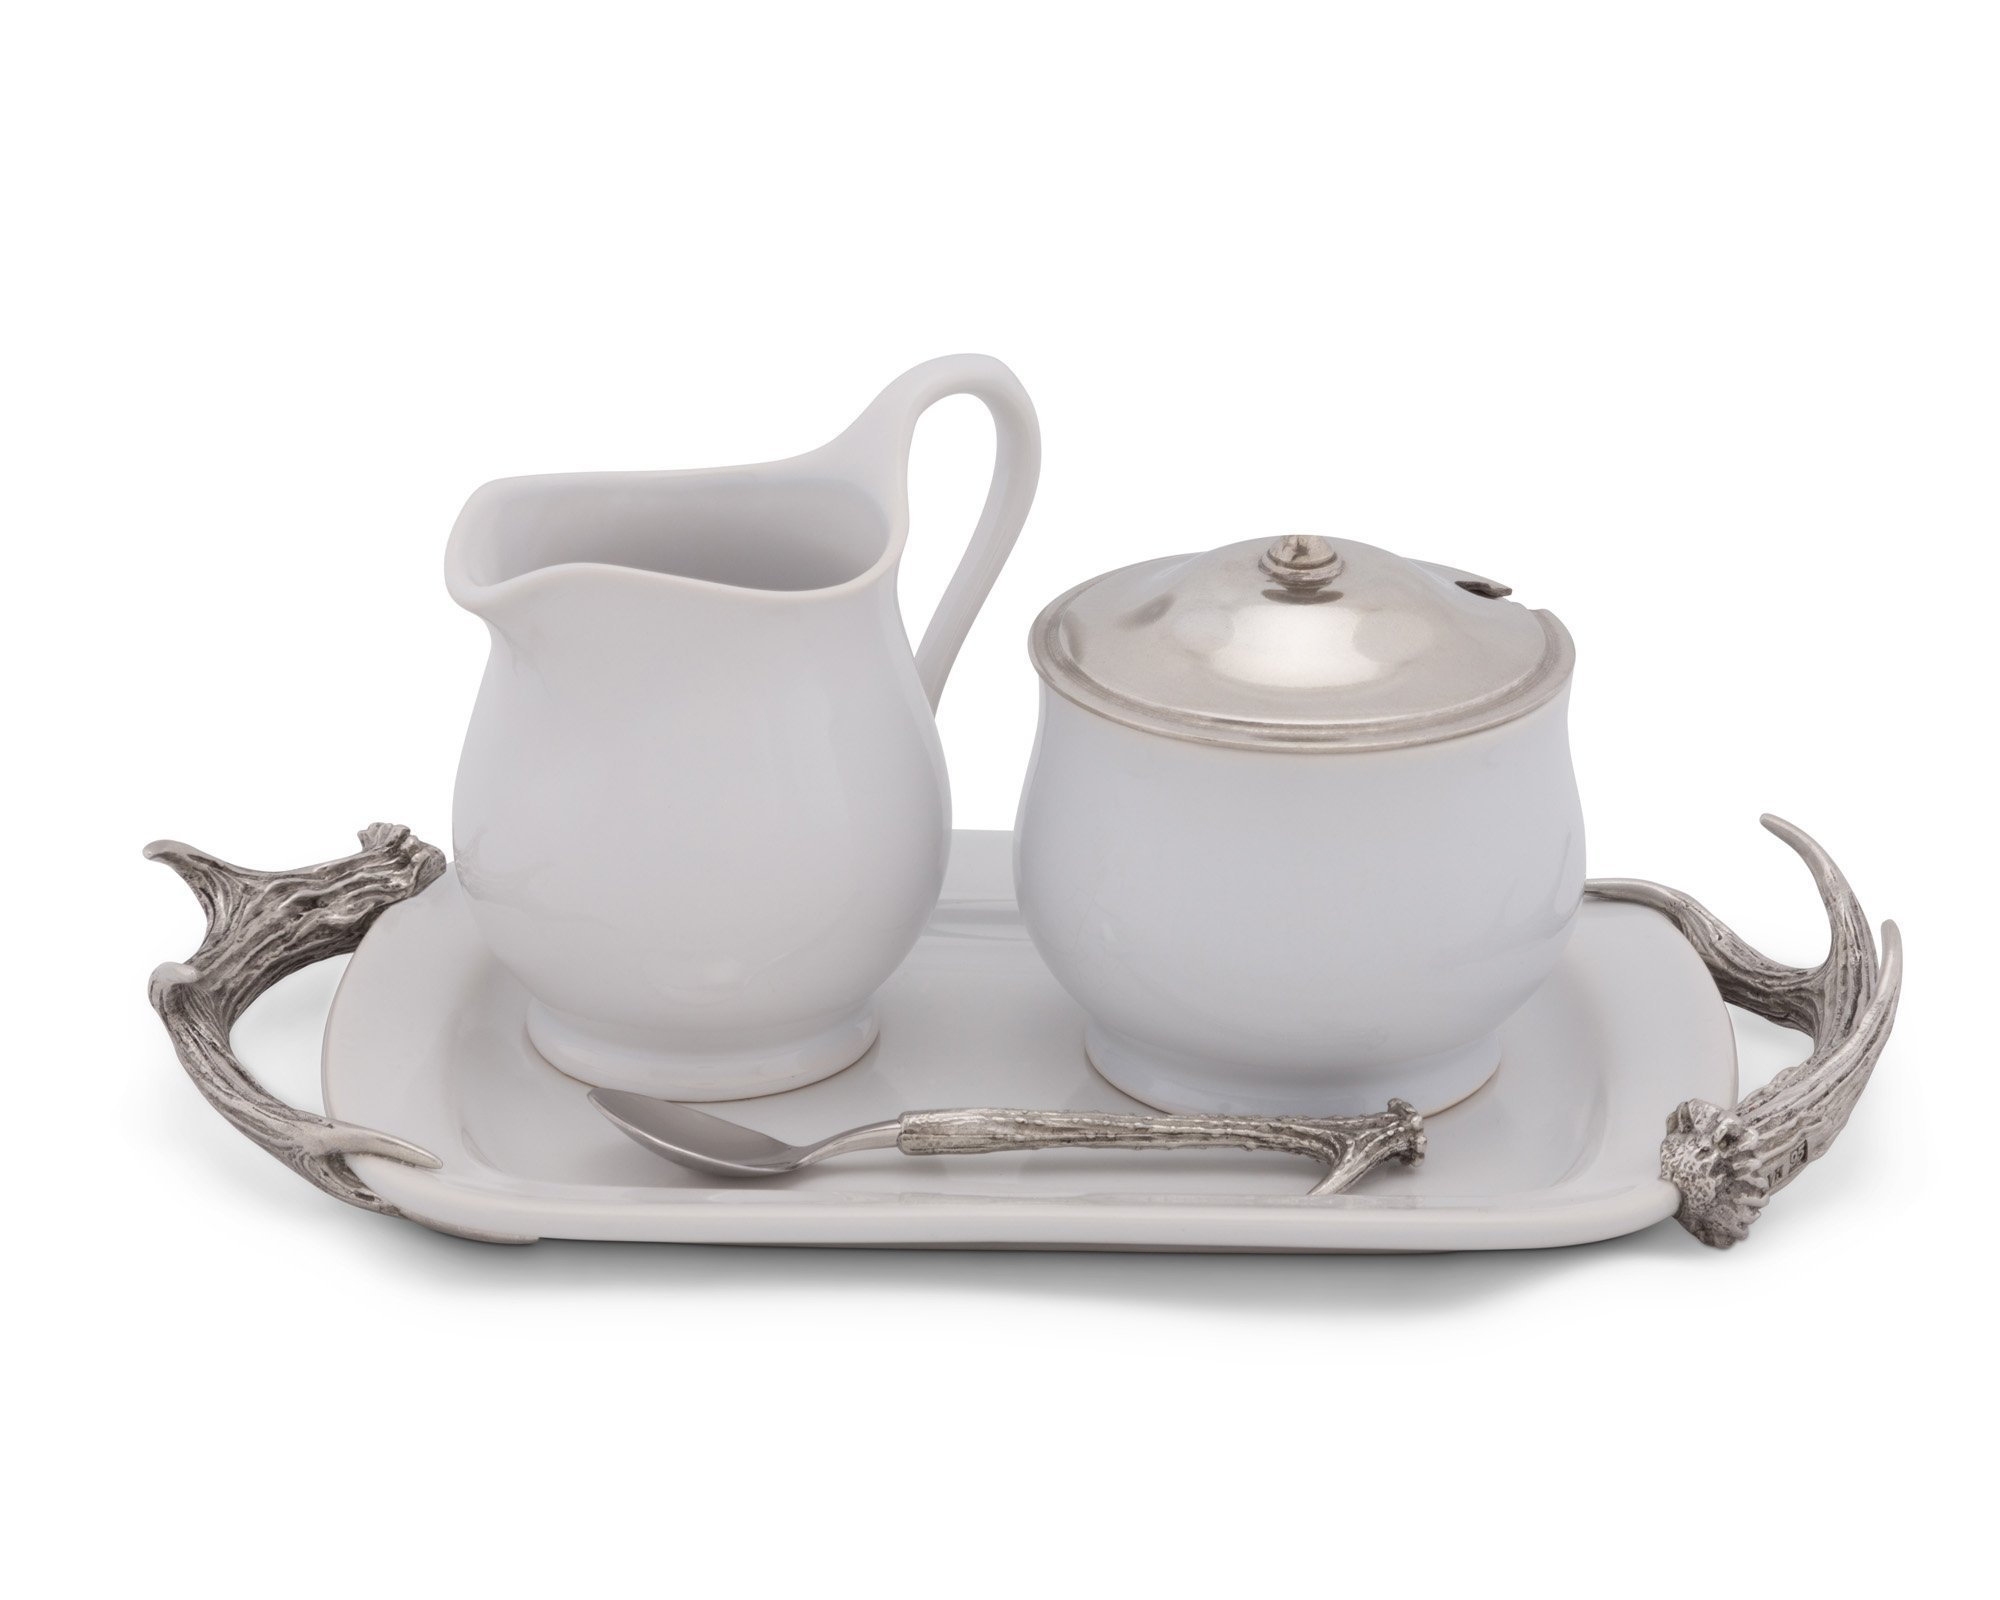 Vagabond House Stoneware Creamer Set with Pewter Antler Handles 12.25'' Long Tray 5 pieces